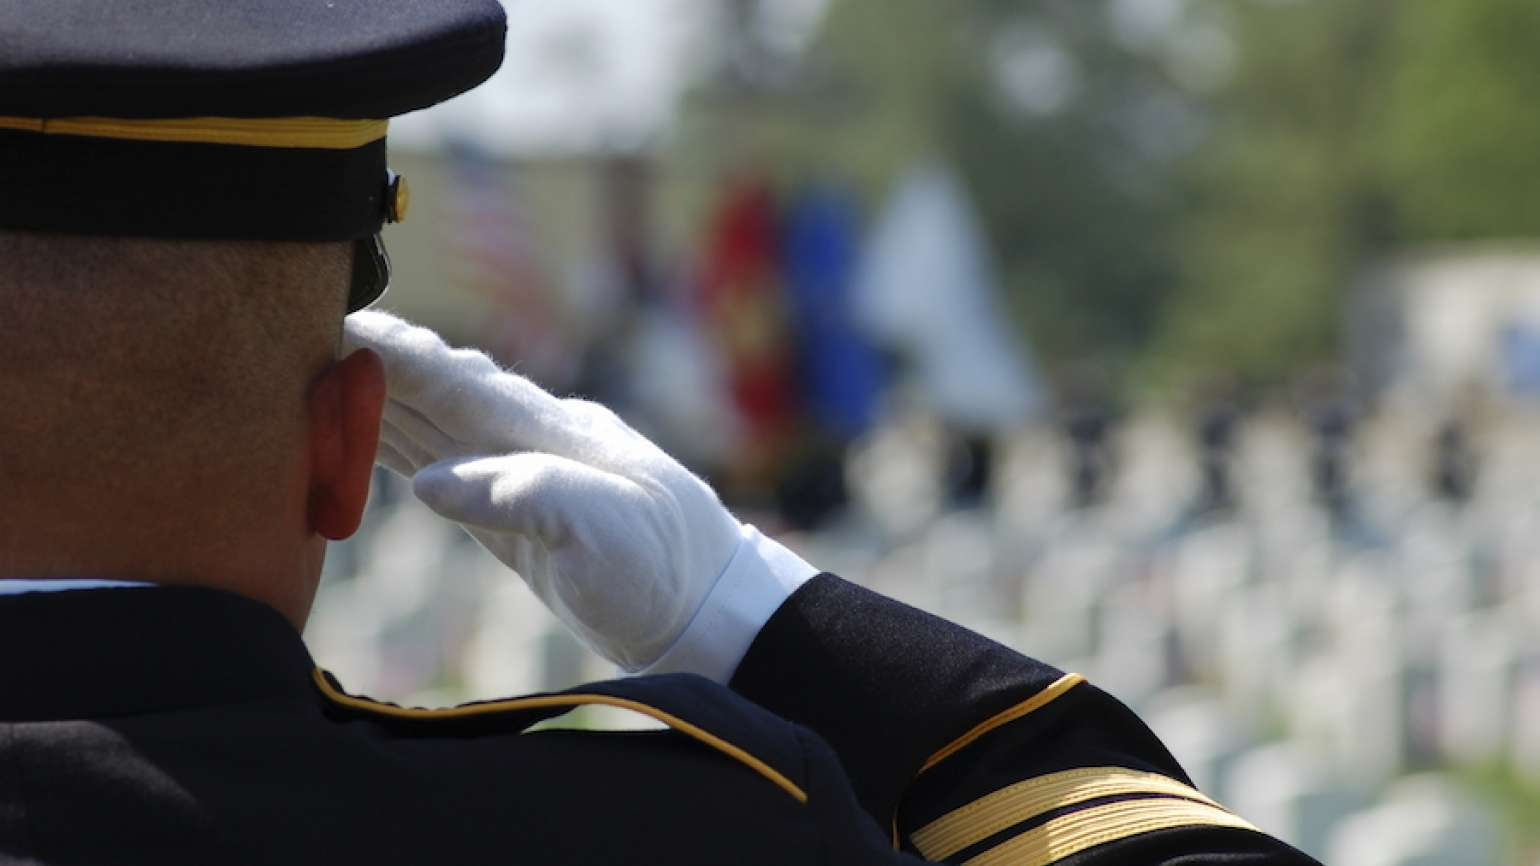 Soldier salutes fallen soldiers in a cemetery on Memorial Day